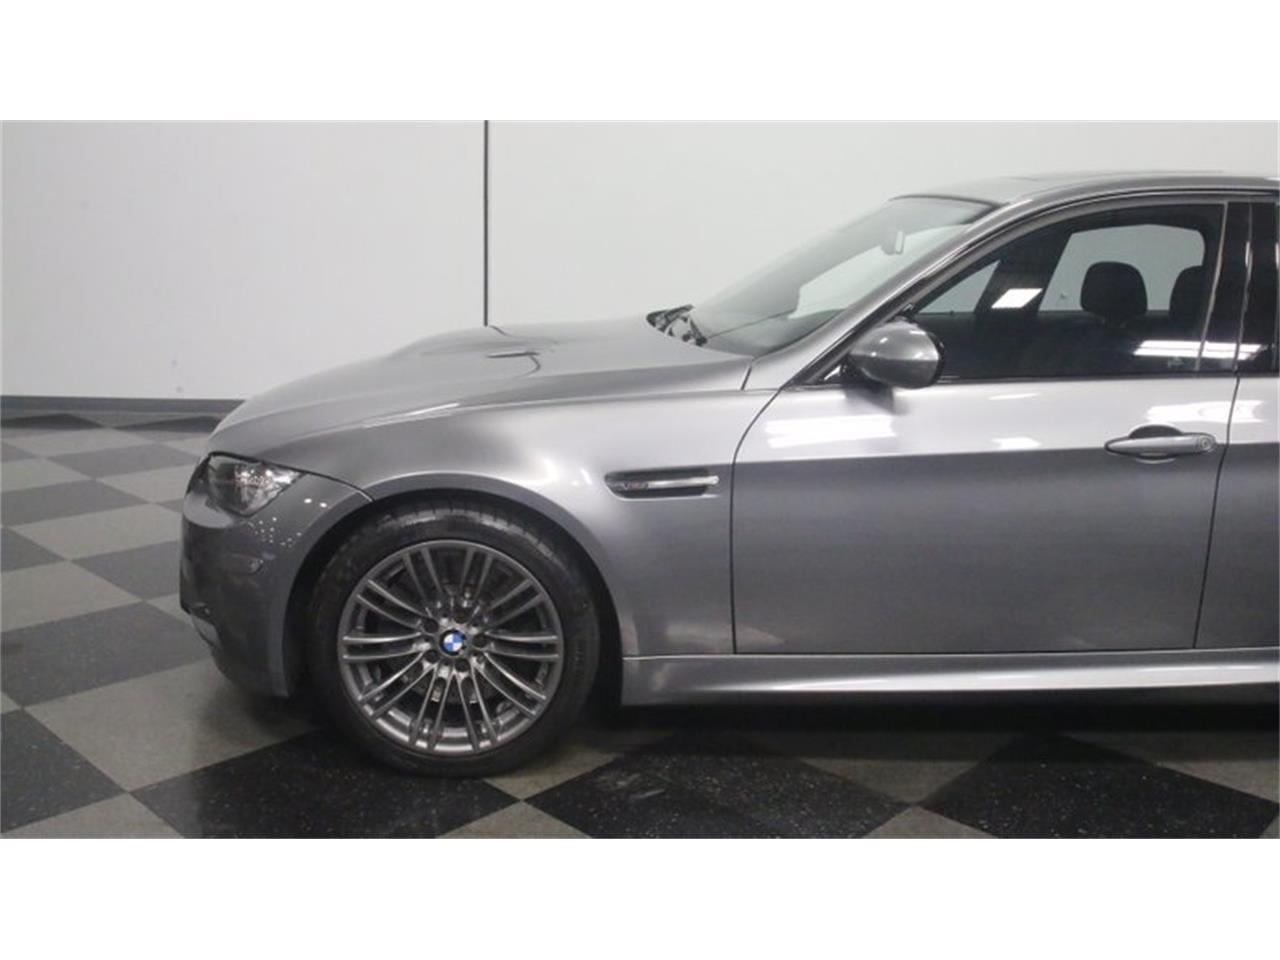 2010 BMW M3 for sale in Lithia Springs, GA – photo 24